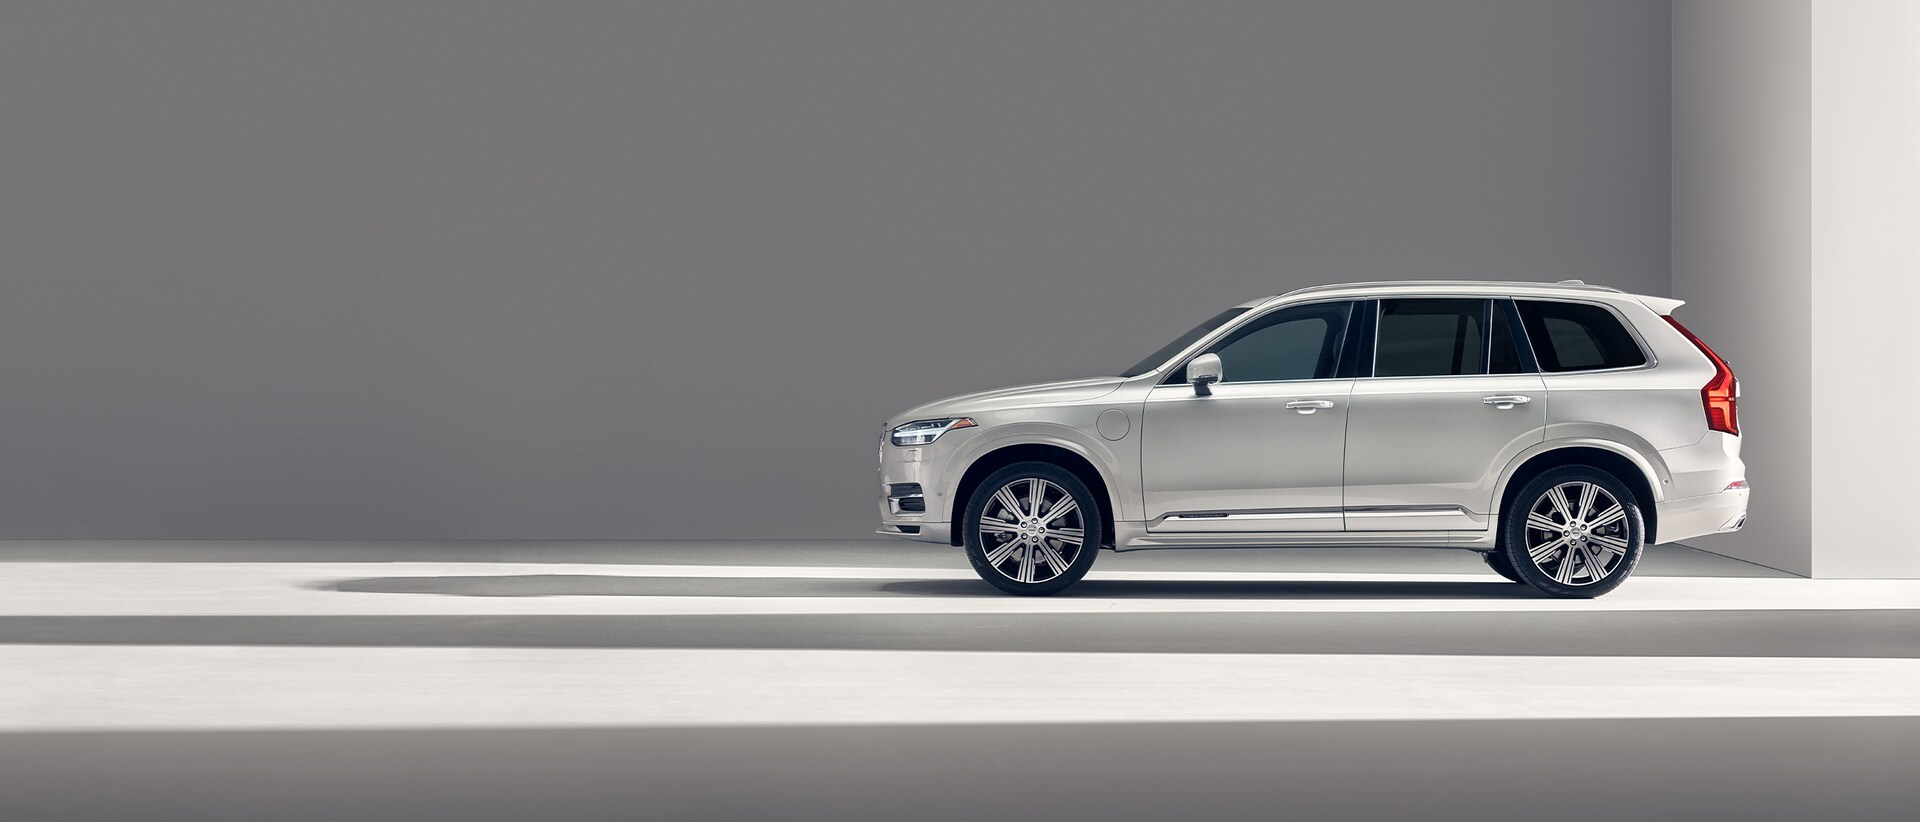 The Volvo XC90 plug-in hybrid